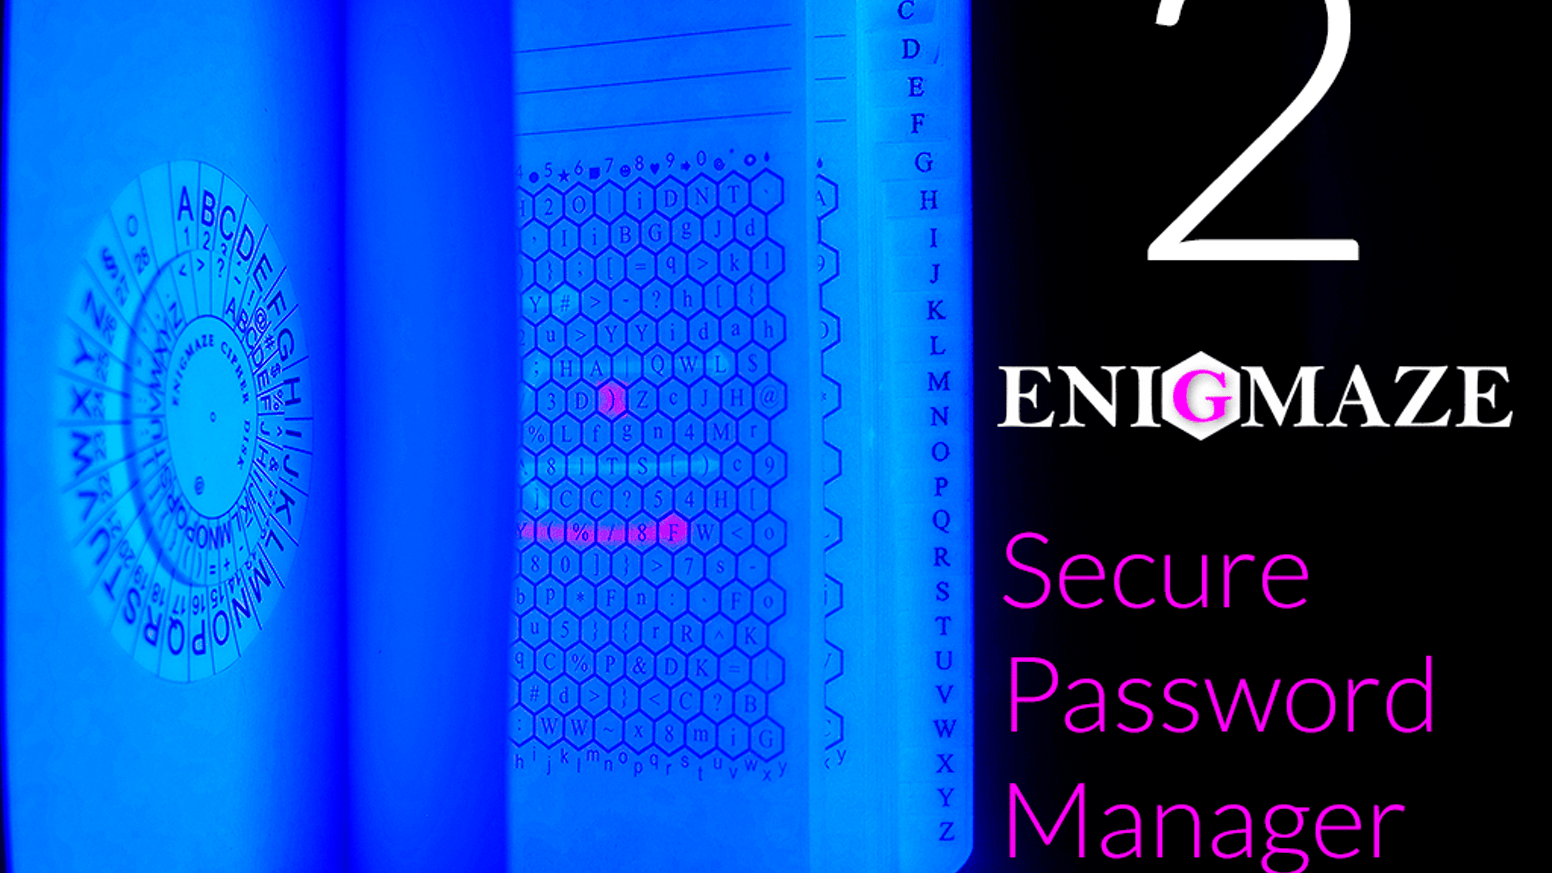 Password Journal Specifically Designed to Create and Store Unique, Hack-proof Internet Passwords